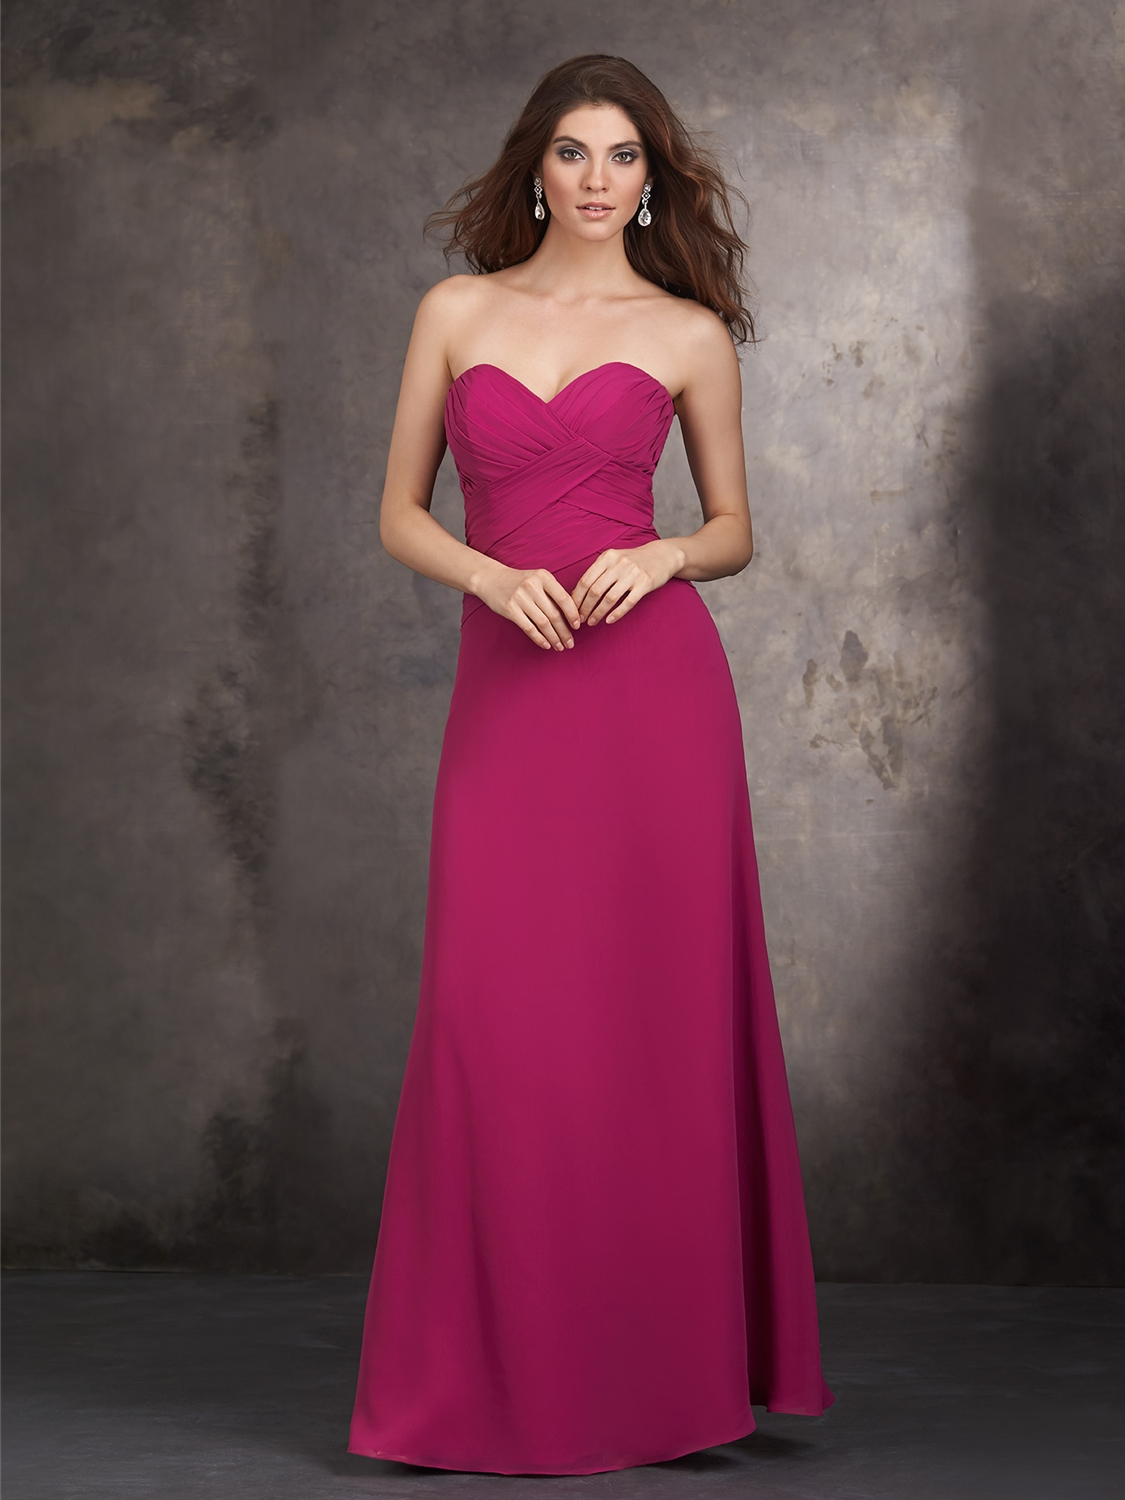 Allure bridesmaids bridesmaid dress style 1429 house of brides select color ombrellifo Images